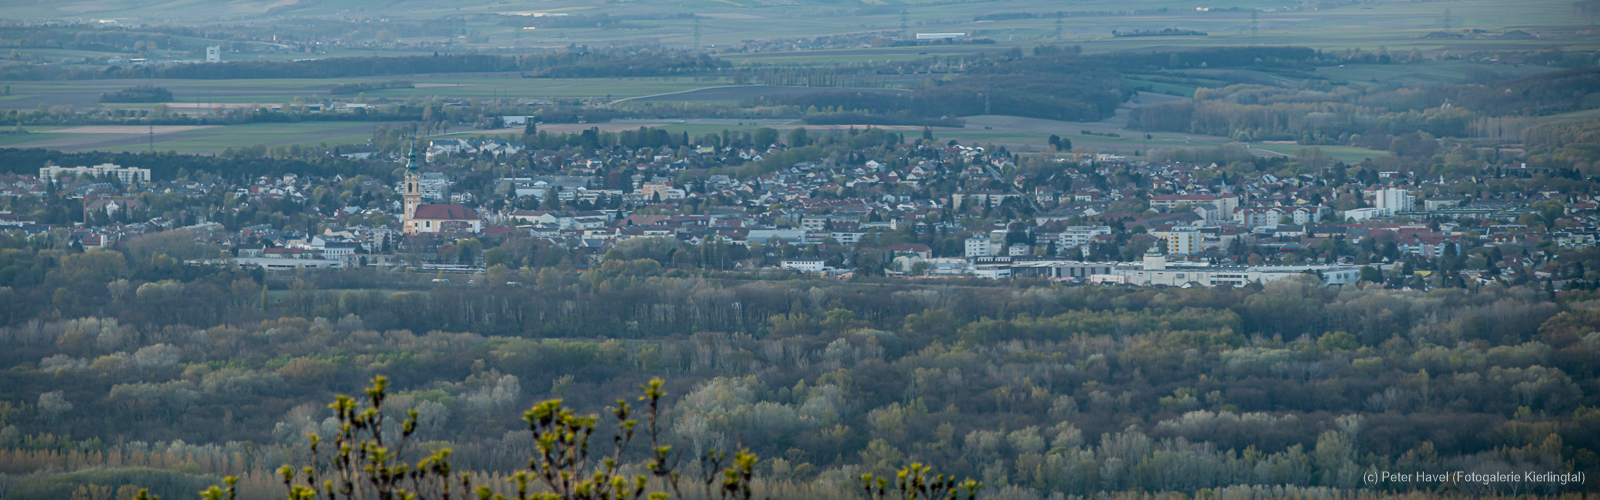 Panorama Stockerau